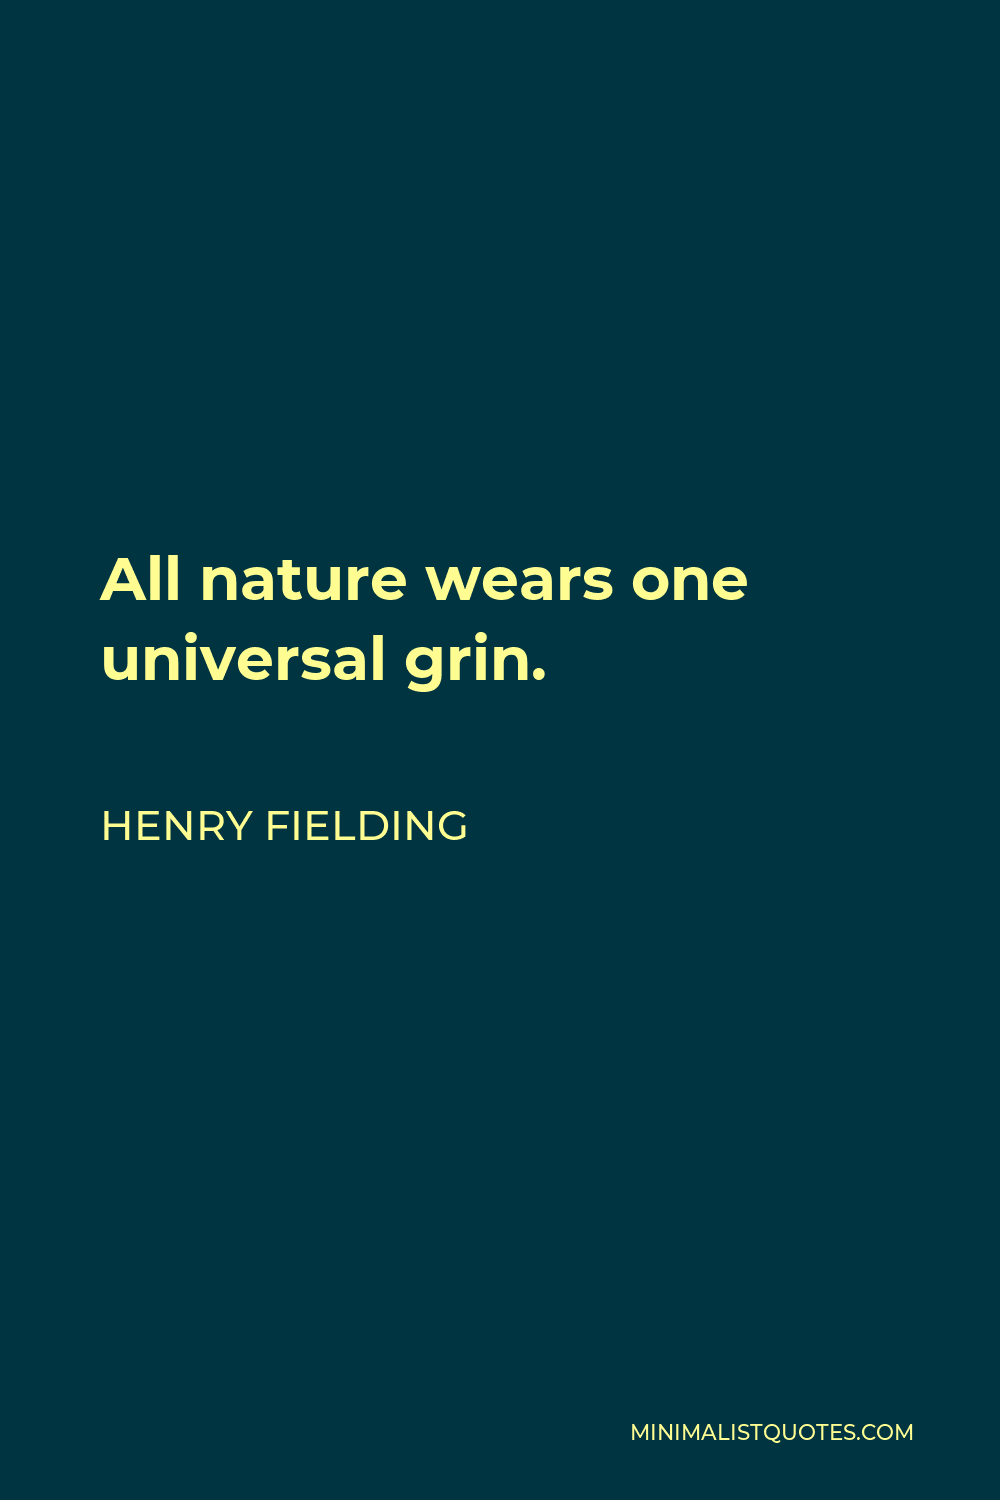 Henry Fielding Quote - All nature wears one universal grin.